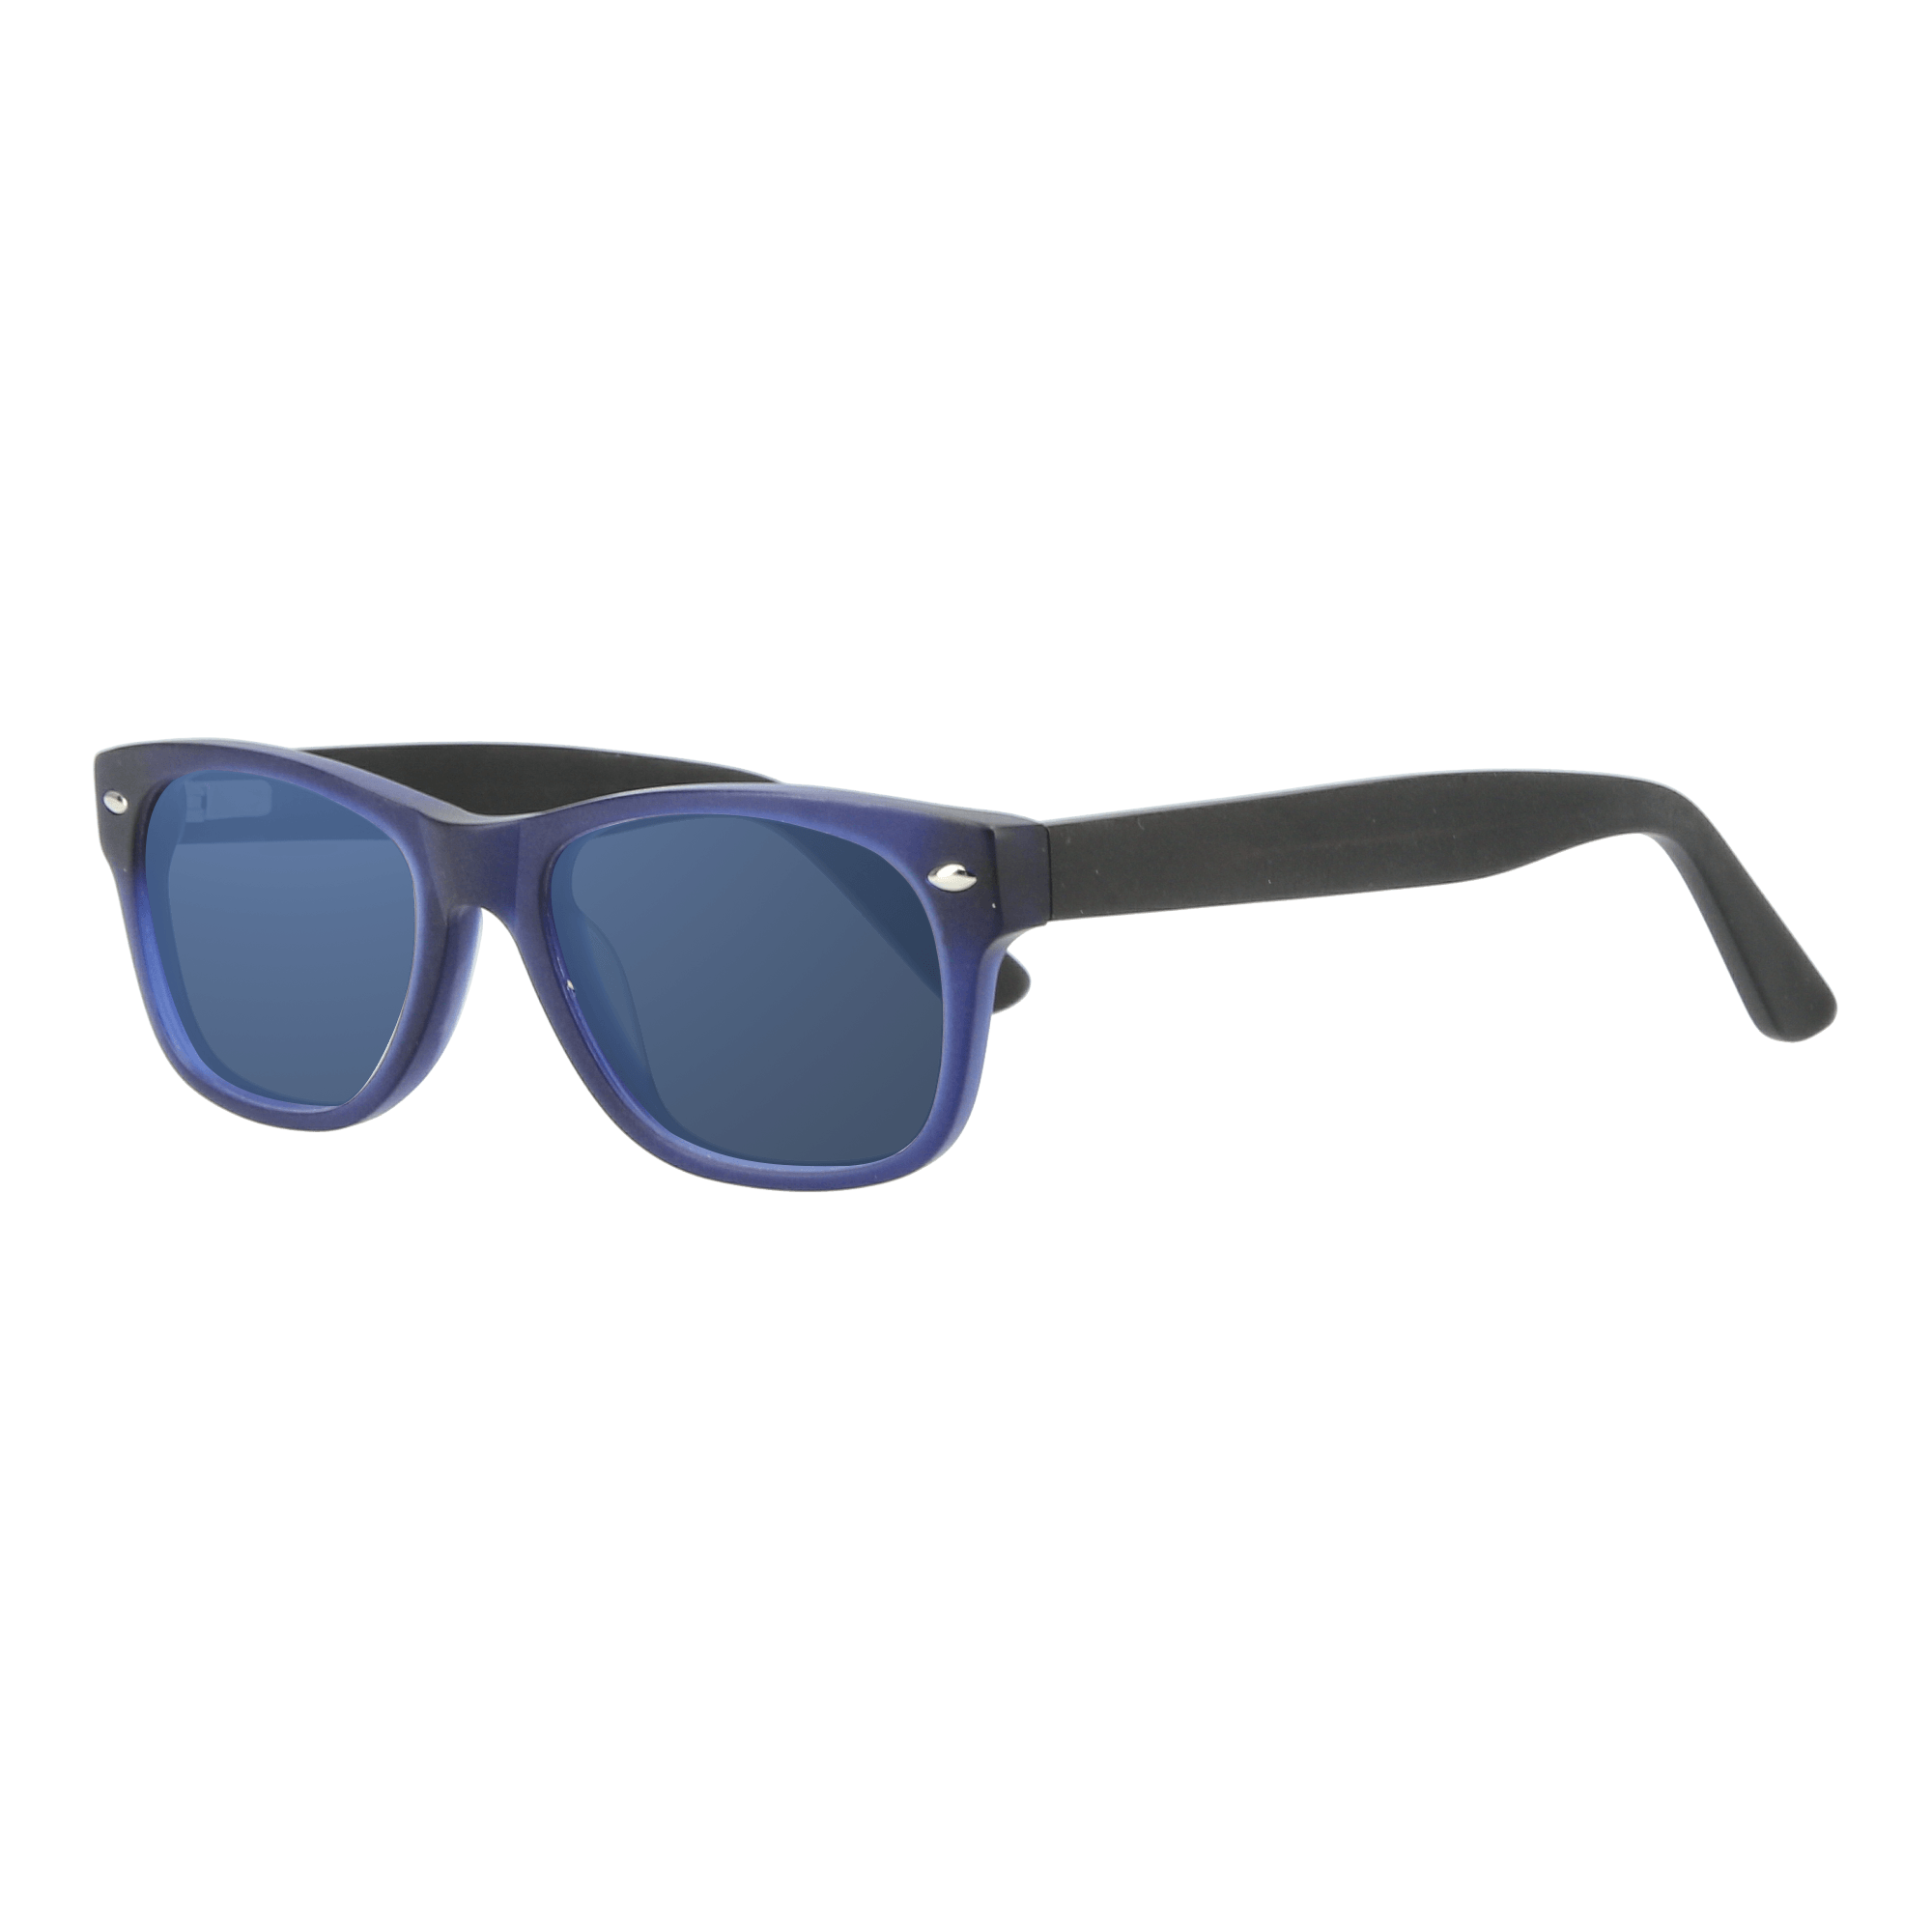 ELLIJAY - MATTE BLUE - BLACK SUNGLASSES SAINT REETS